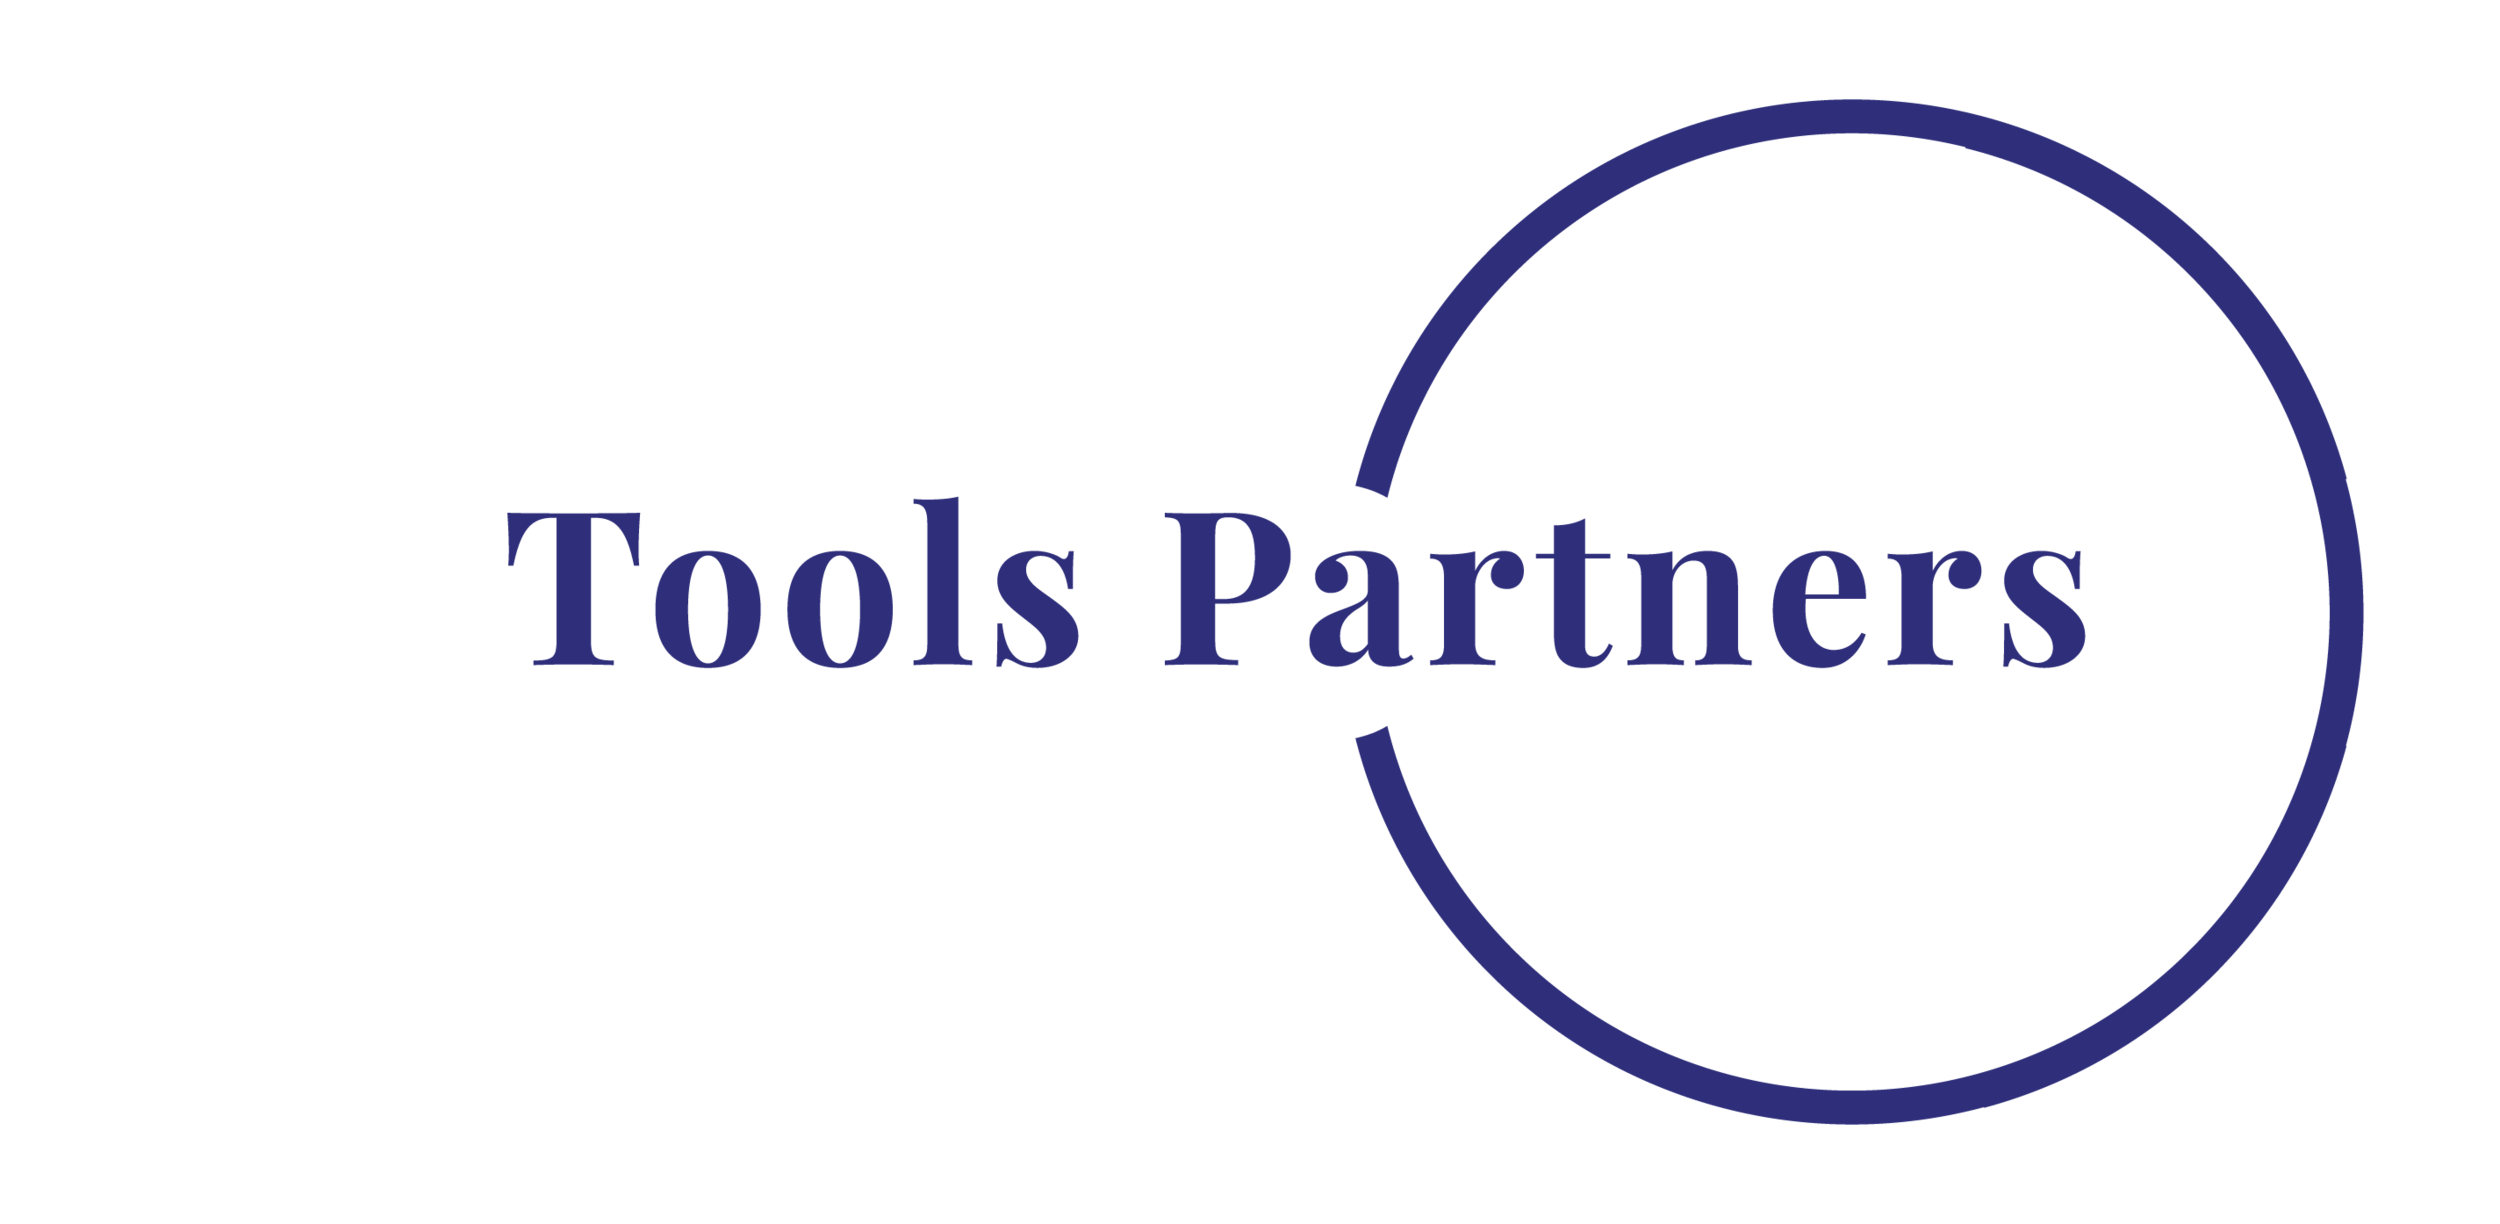 TOOLS PARTNERS BLUE.png